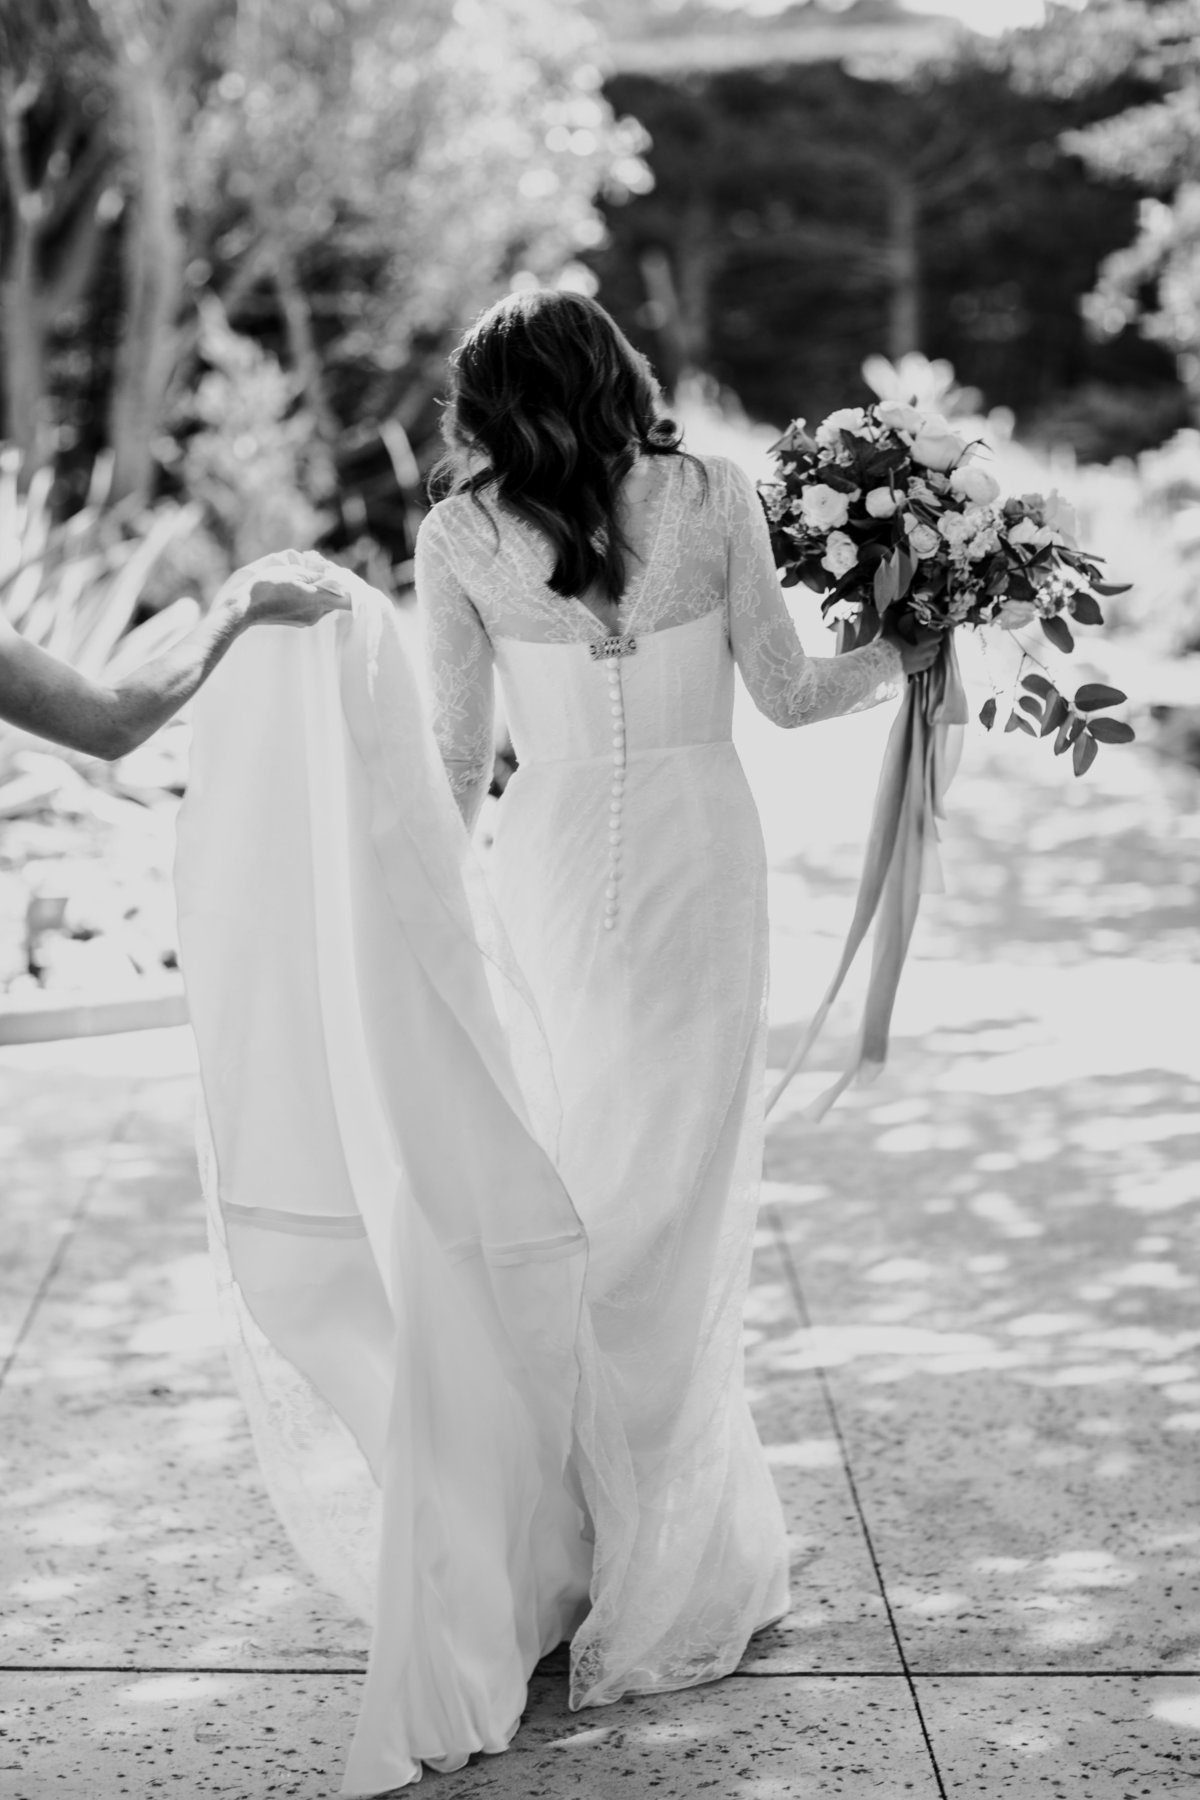 Carmel_Seaside_Chic_Wedding_Valorie_Darling_Photography - 50 of 134